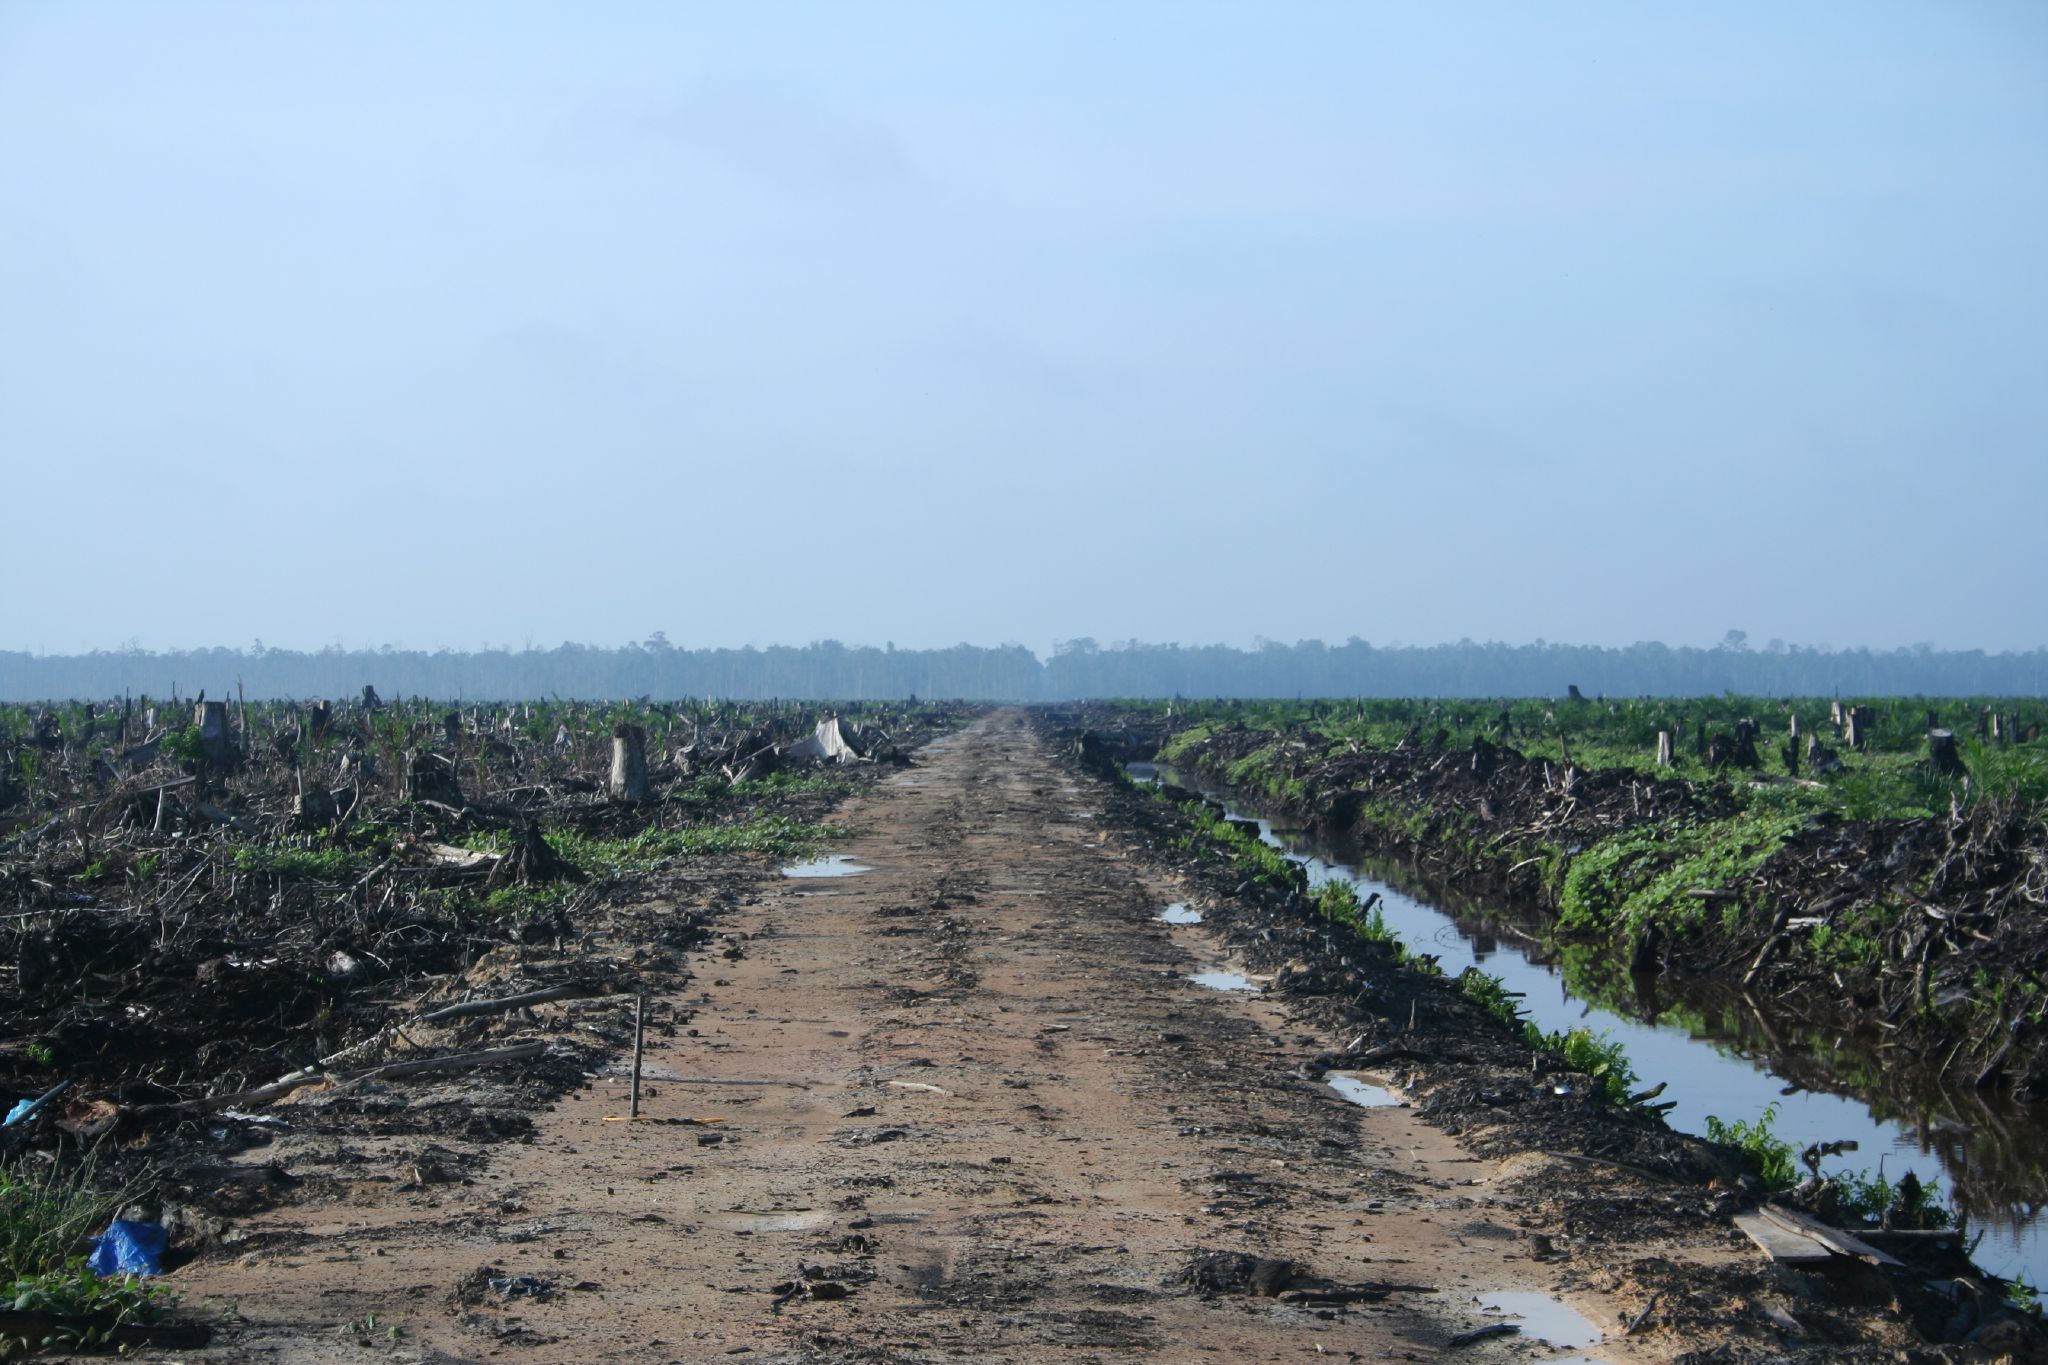 Burned forests throughout Indonesia show the effects of slash-and-burn agriculture. (Wikimedia Commons)